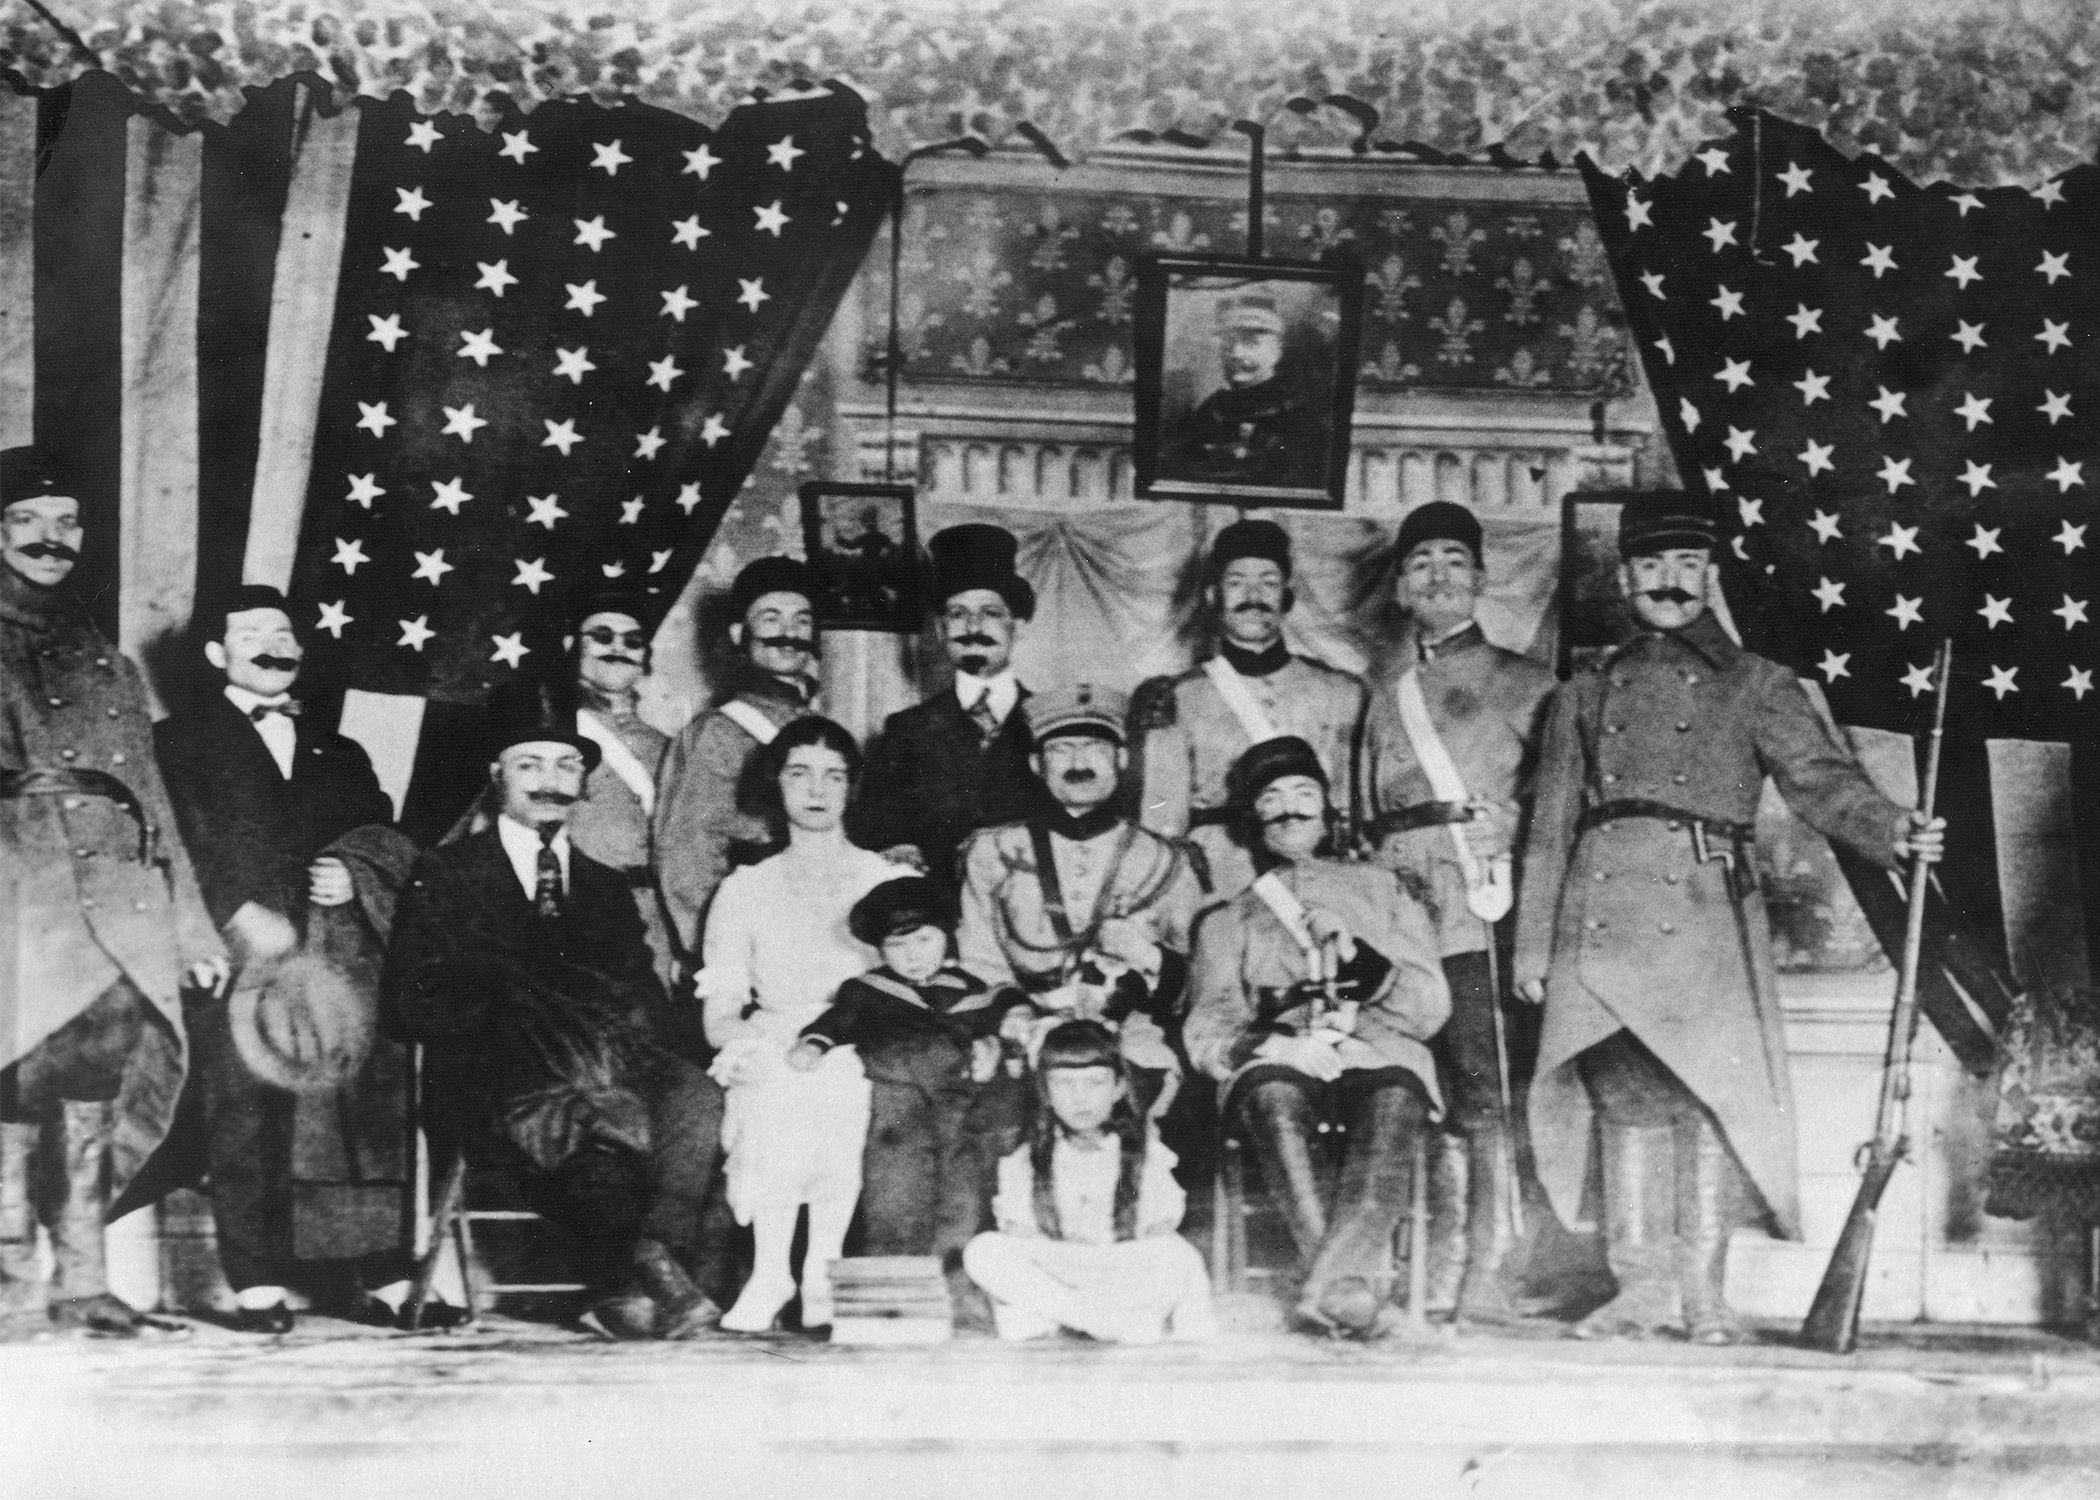 Black and white photo of Sephardic theater troupe; actors dressed in military costume with American flags in background.